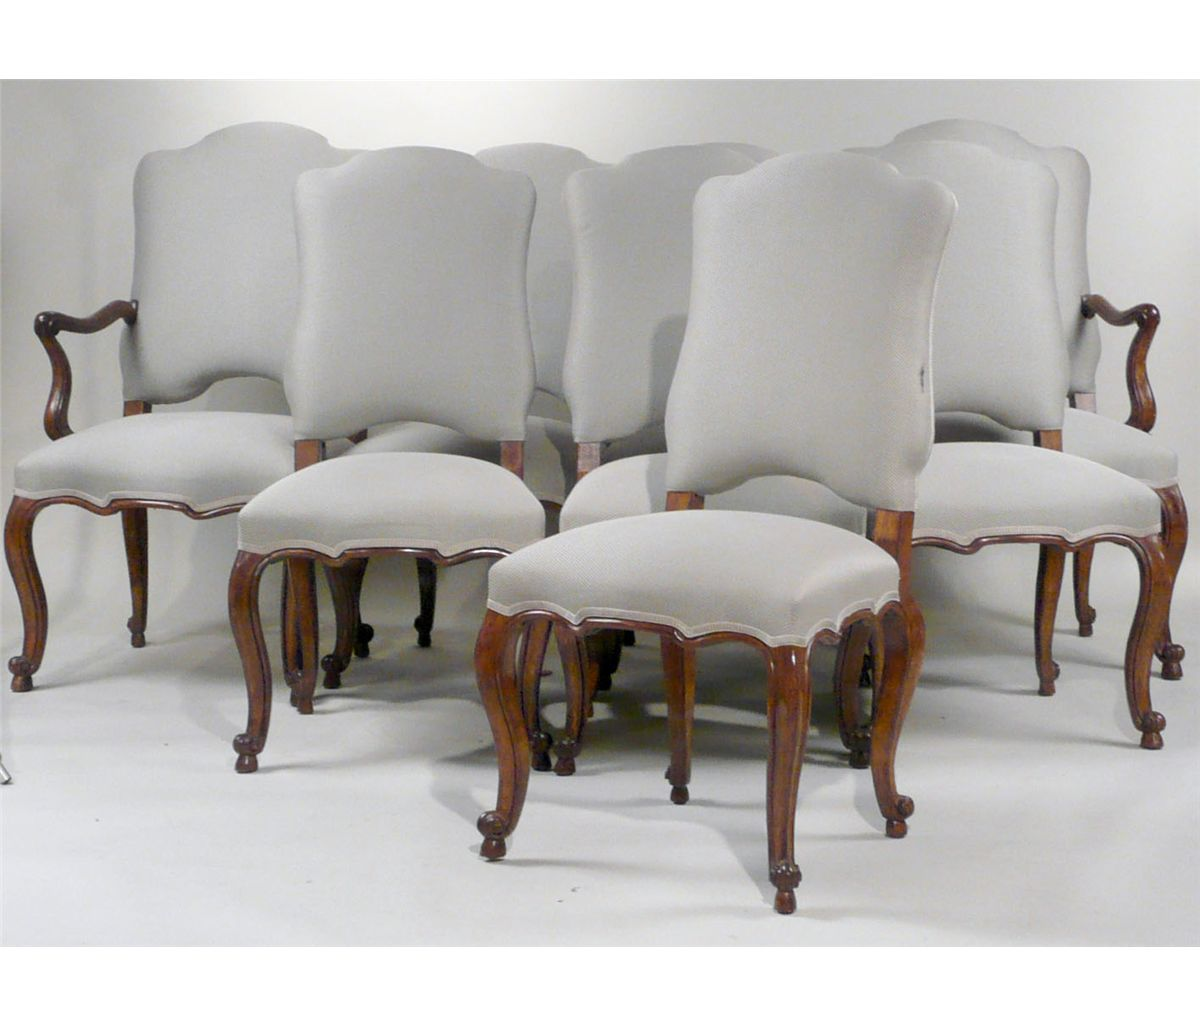 minton spidell chairs alps mountaineering king kong folding chair eight louis xv style dining 20th c